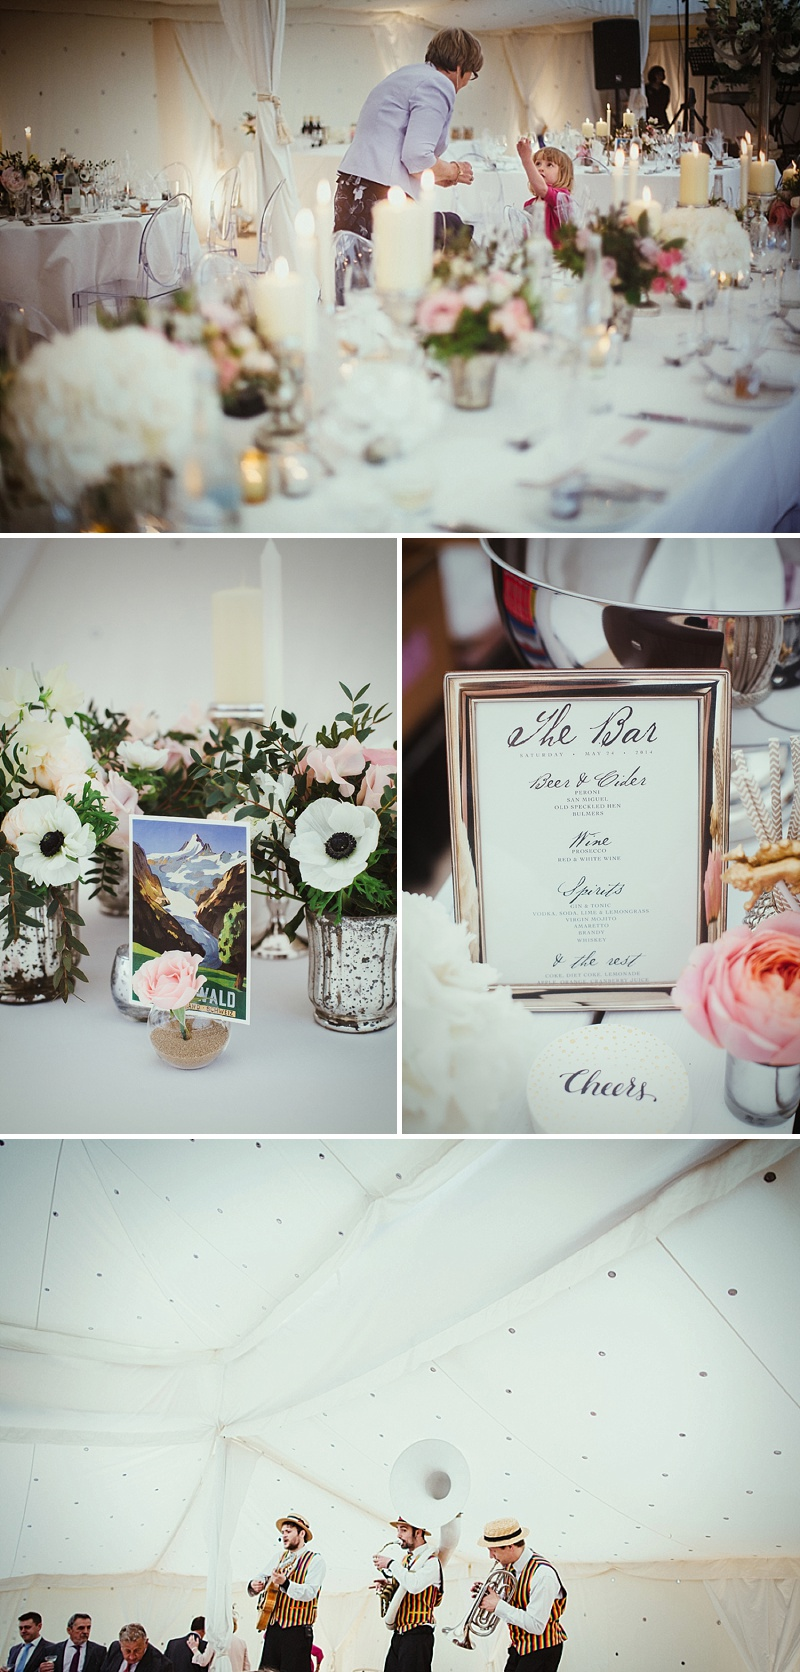 A Vintage Inspired Marquee Wedding At The Bride's Family Home With Bride In David Fielden And Jimmy Choo And Bridesmaids In Sequinned Adrianna Pappell Gowns With Groom And Groomsmen In Suits By Dress To Kill 6